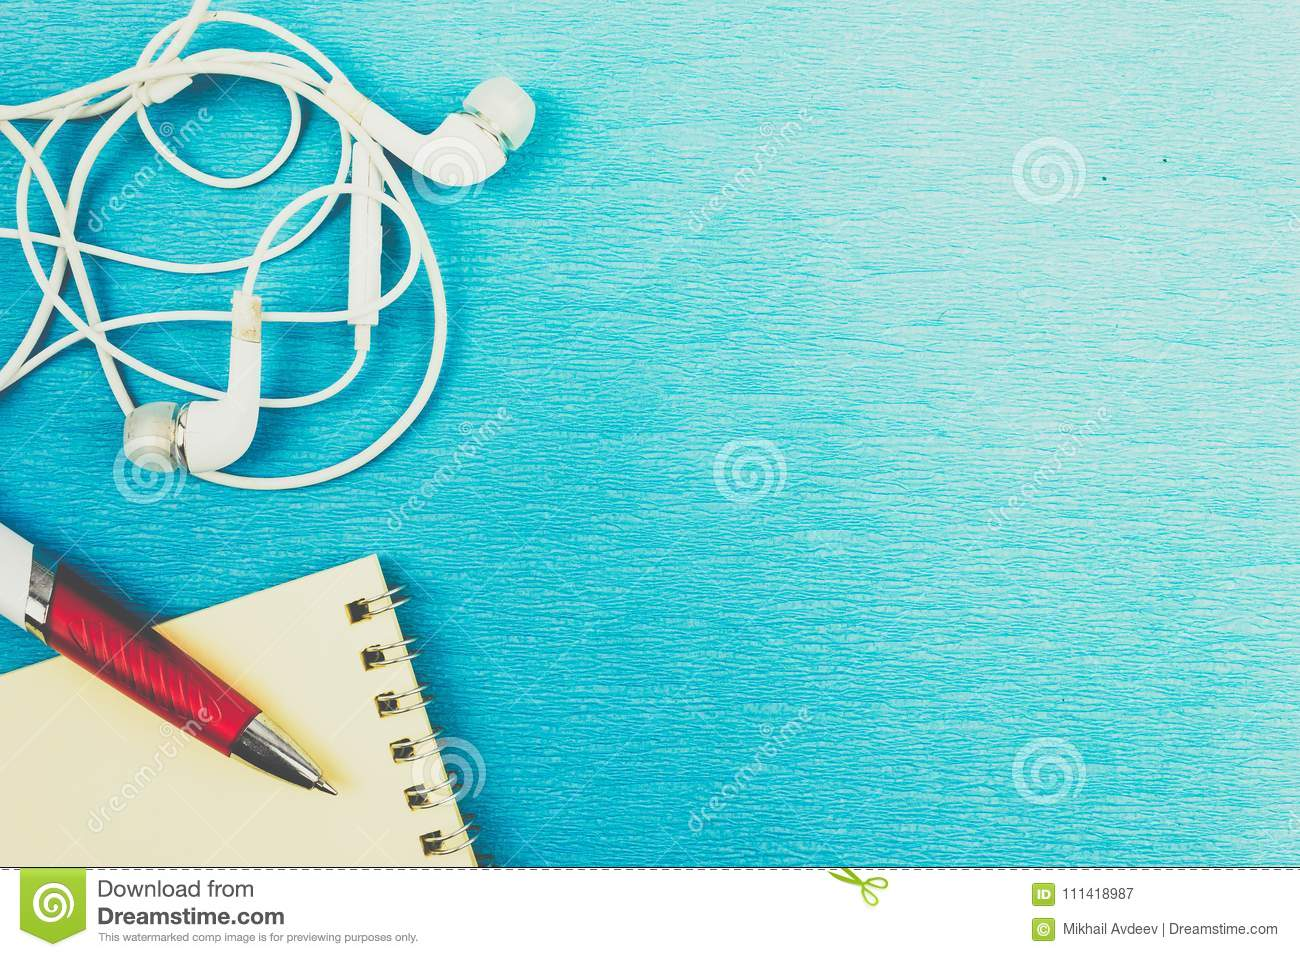 White headphones and wires on blue background.